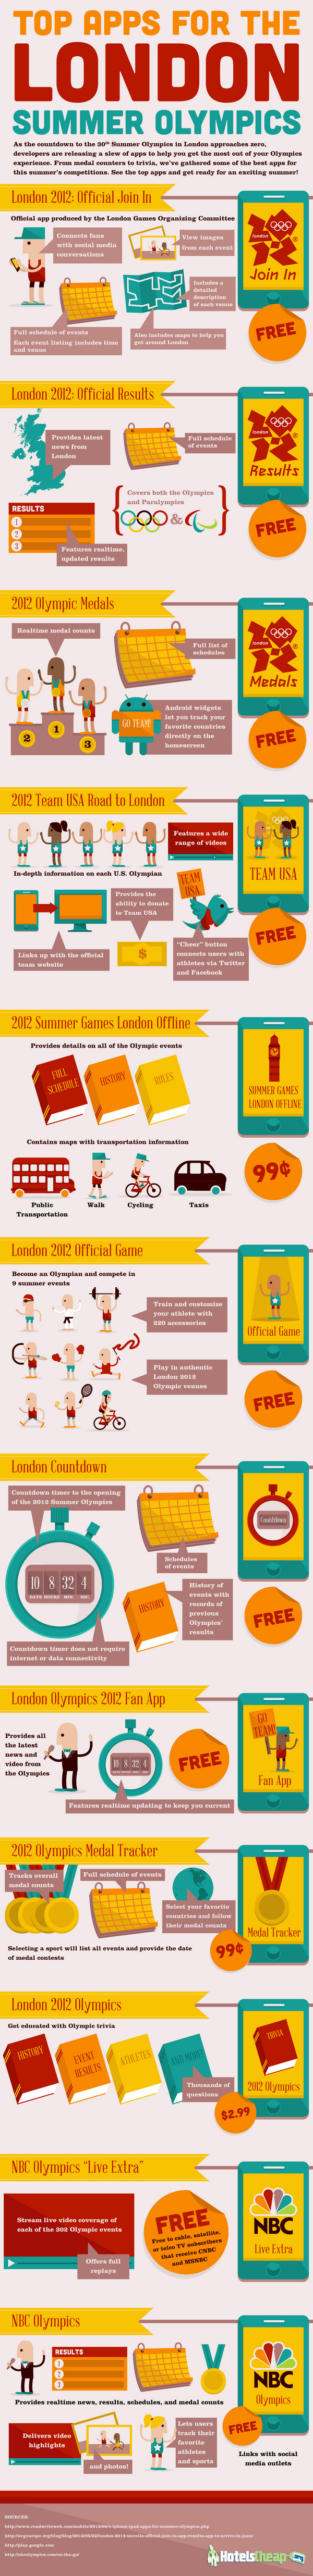 5. Top Apps for the London Summer Olympics